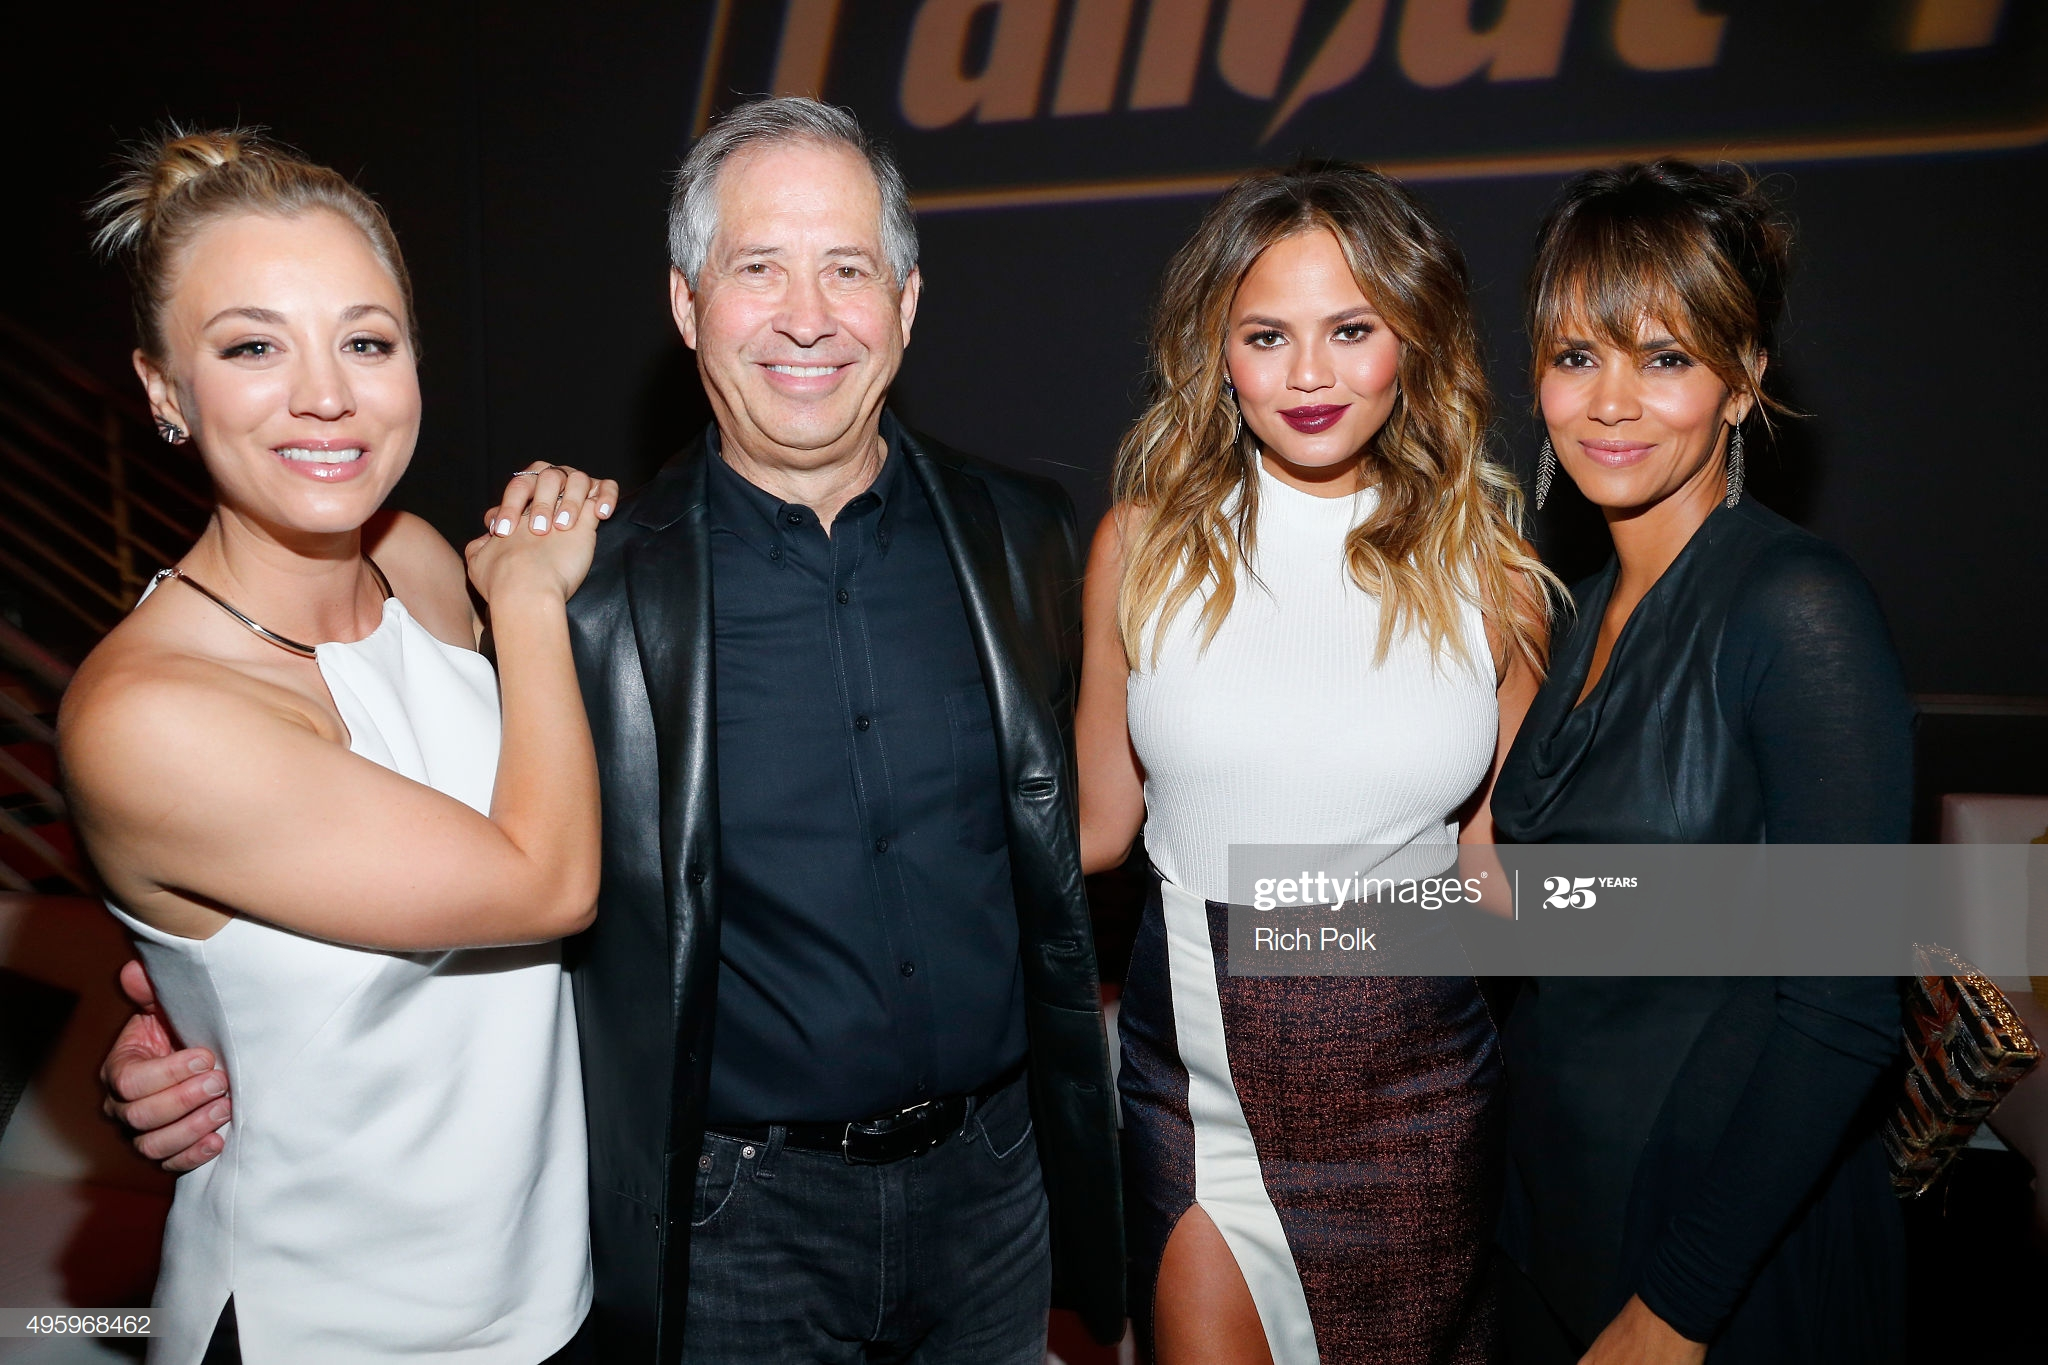 gettyimages-495968462-2048x2048.jpg